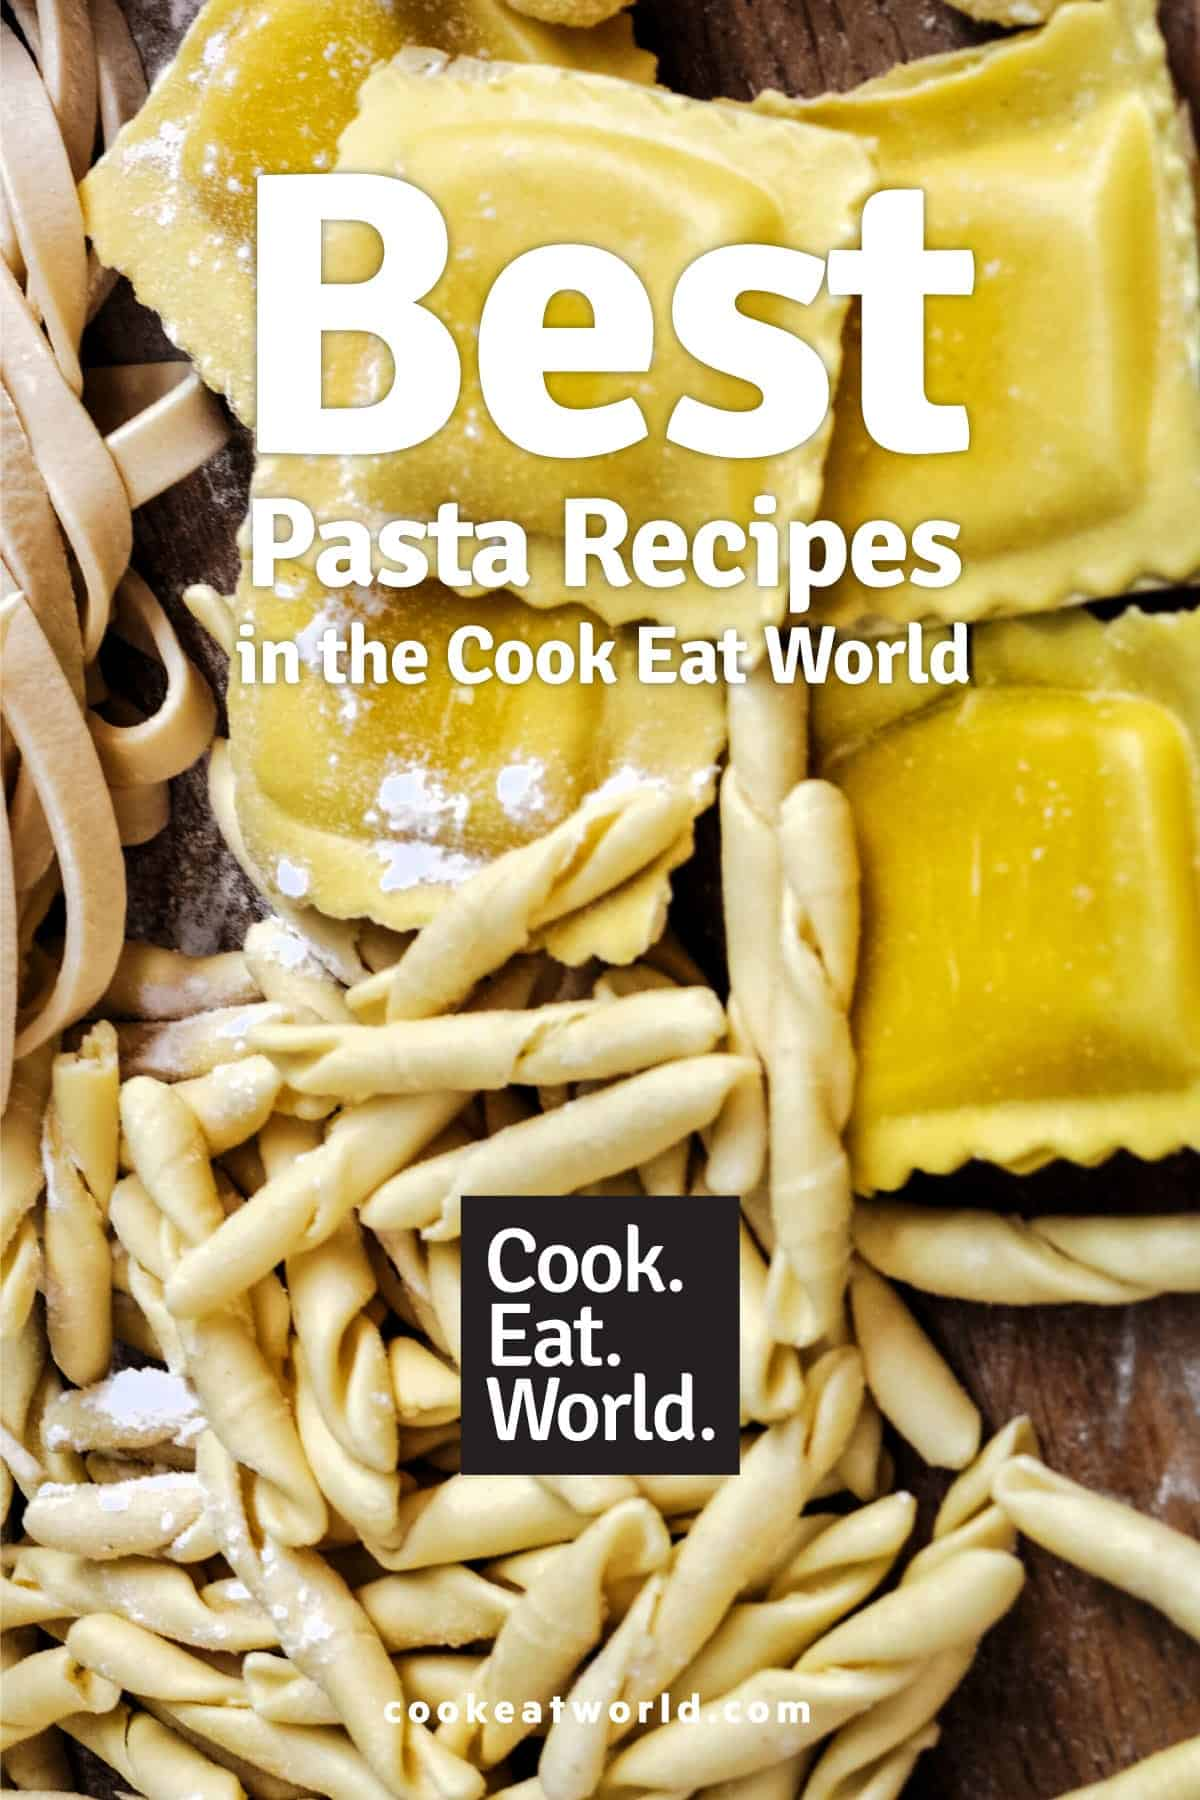 Best Pasta Recipes in the Cook Eat World | cookeatworld.com